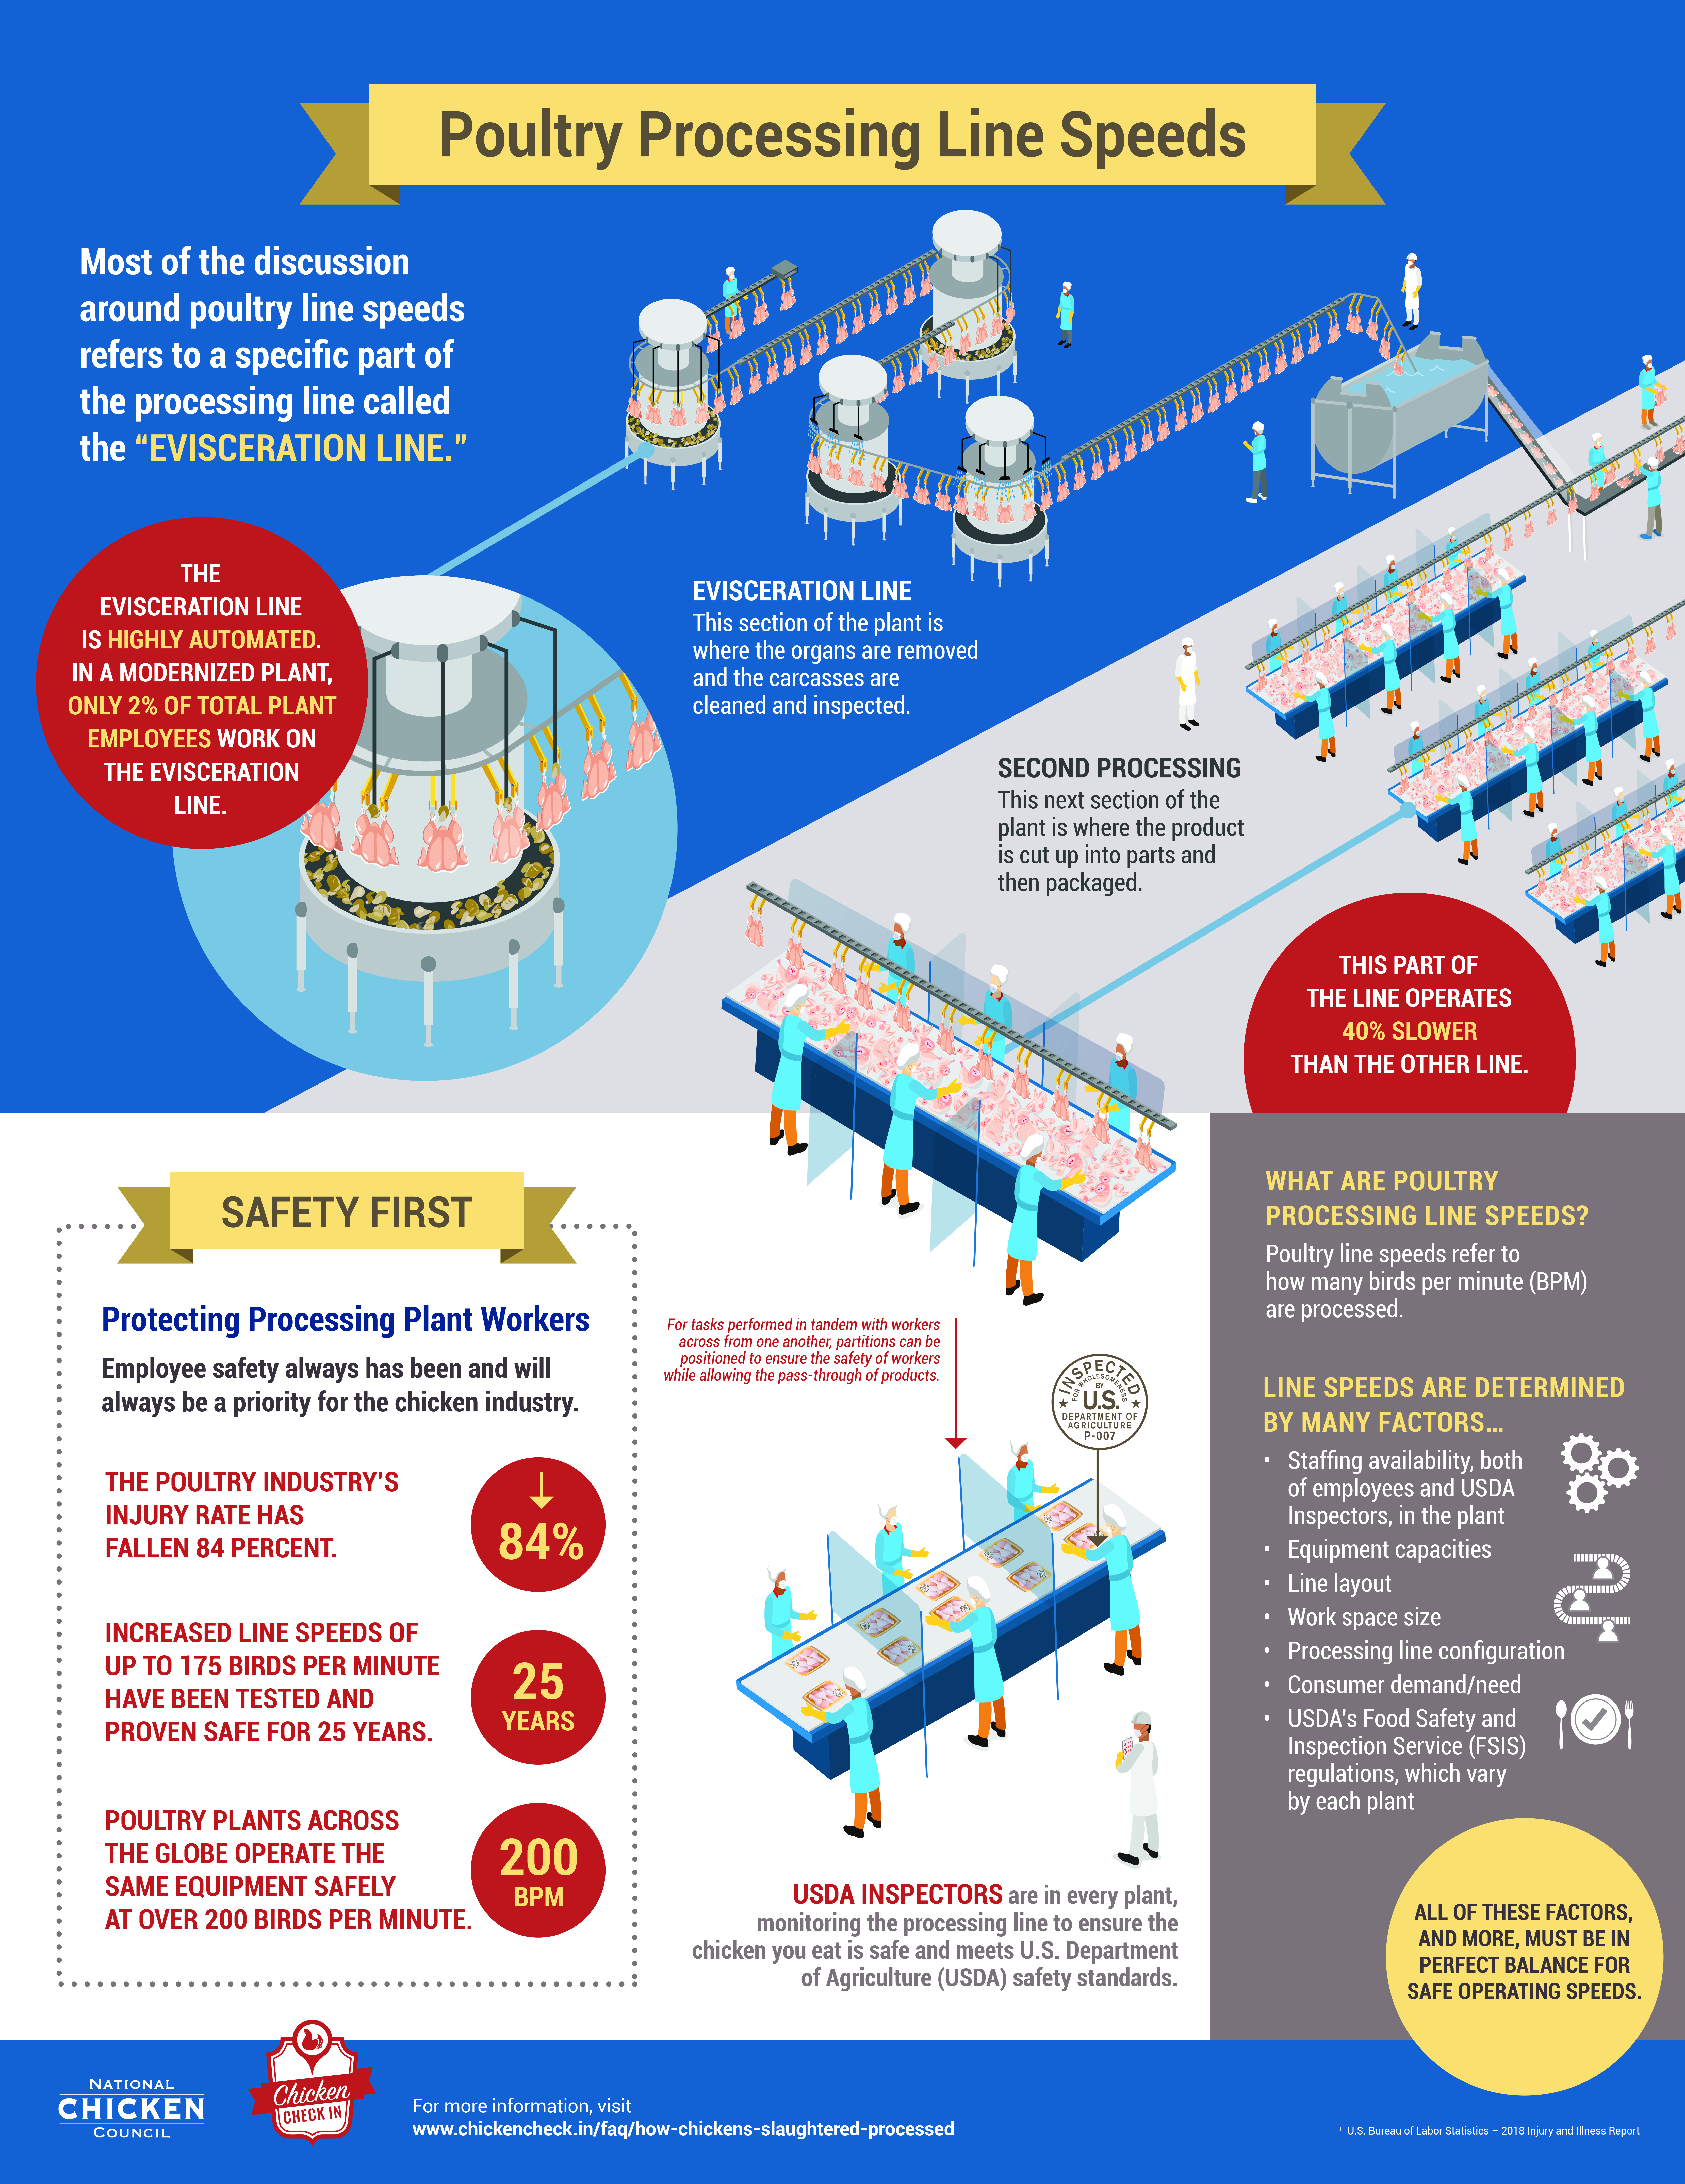 Poultry Processing Line Speeds